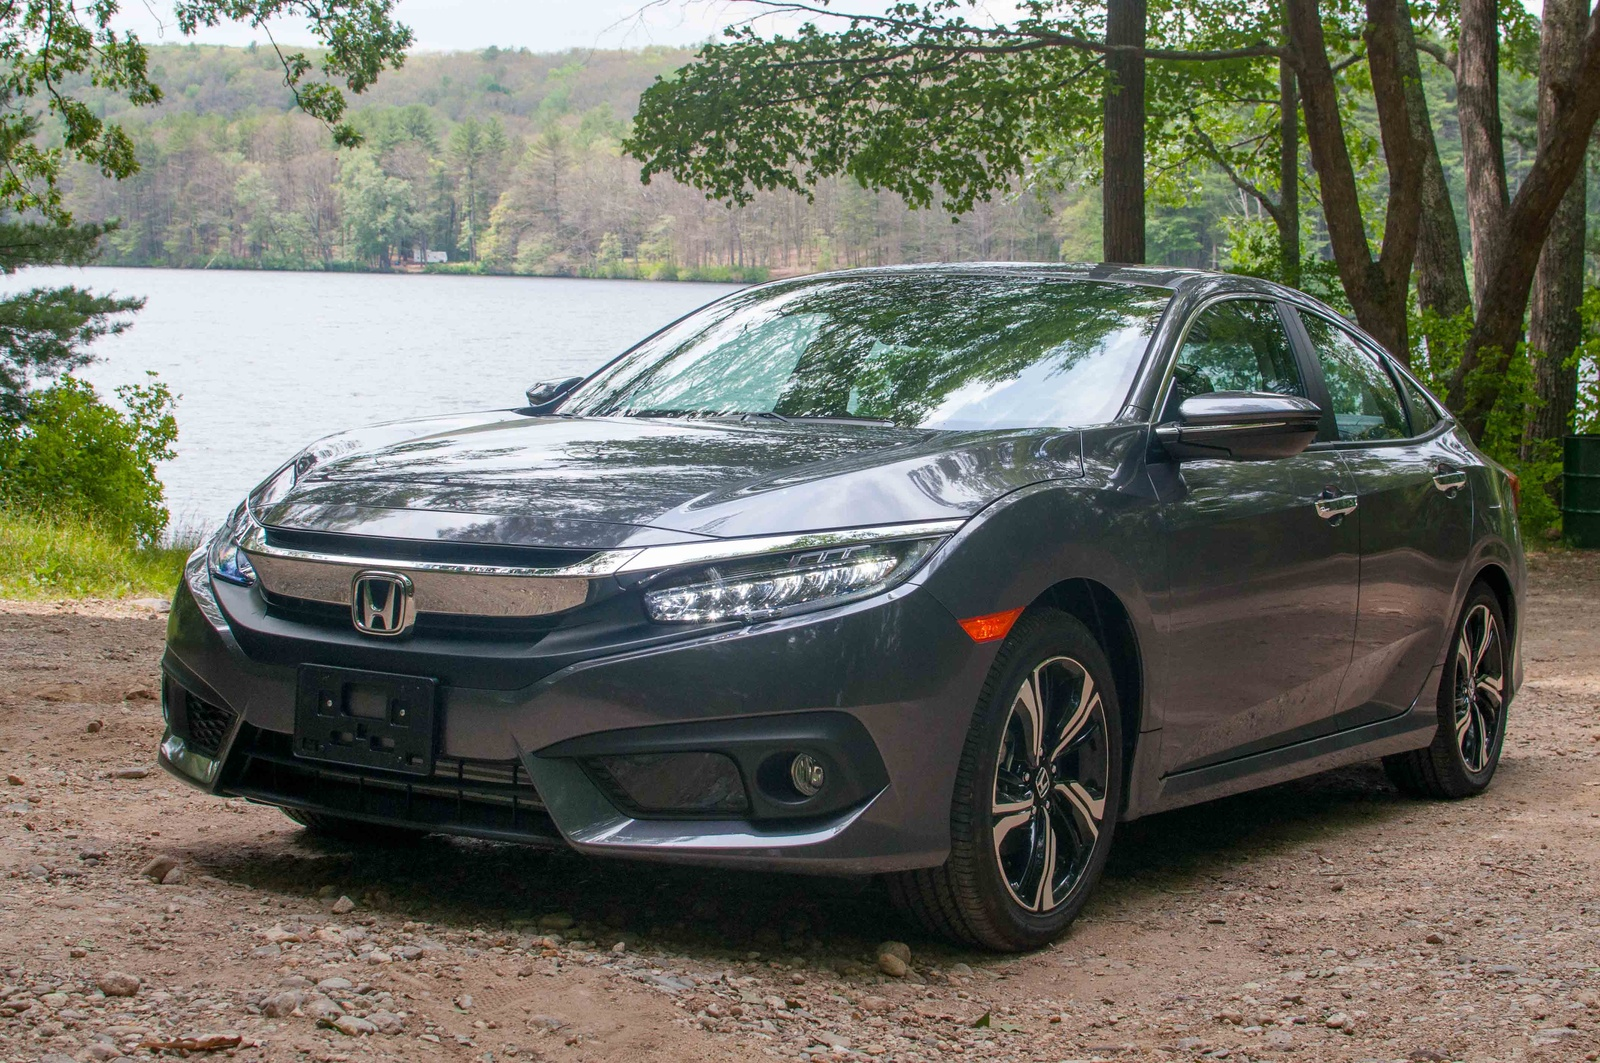 Honda Civic 2016 Vs 2017 >> 2016 Honda Civic Overview Cargurus